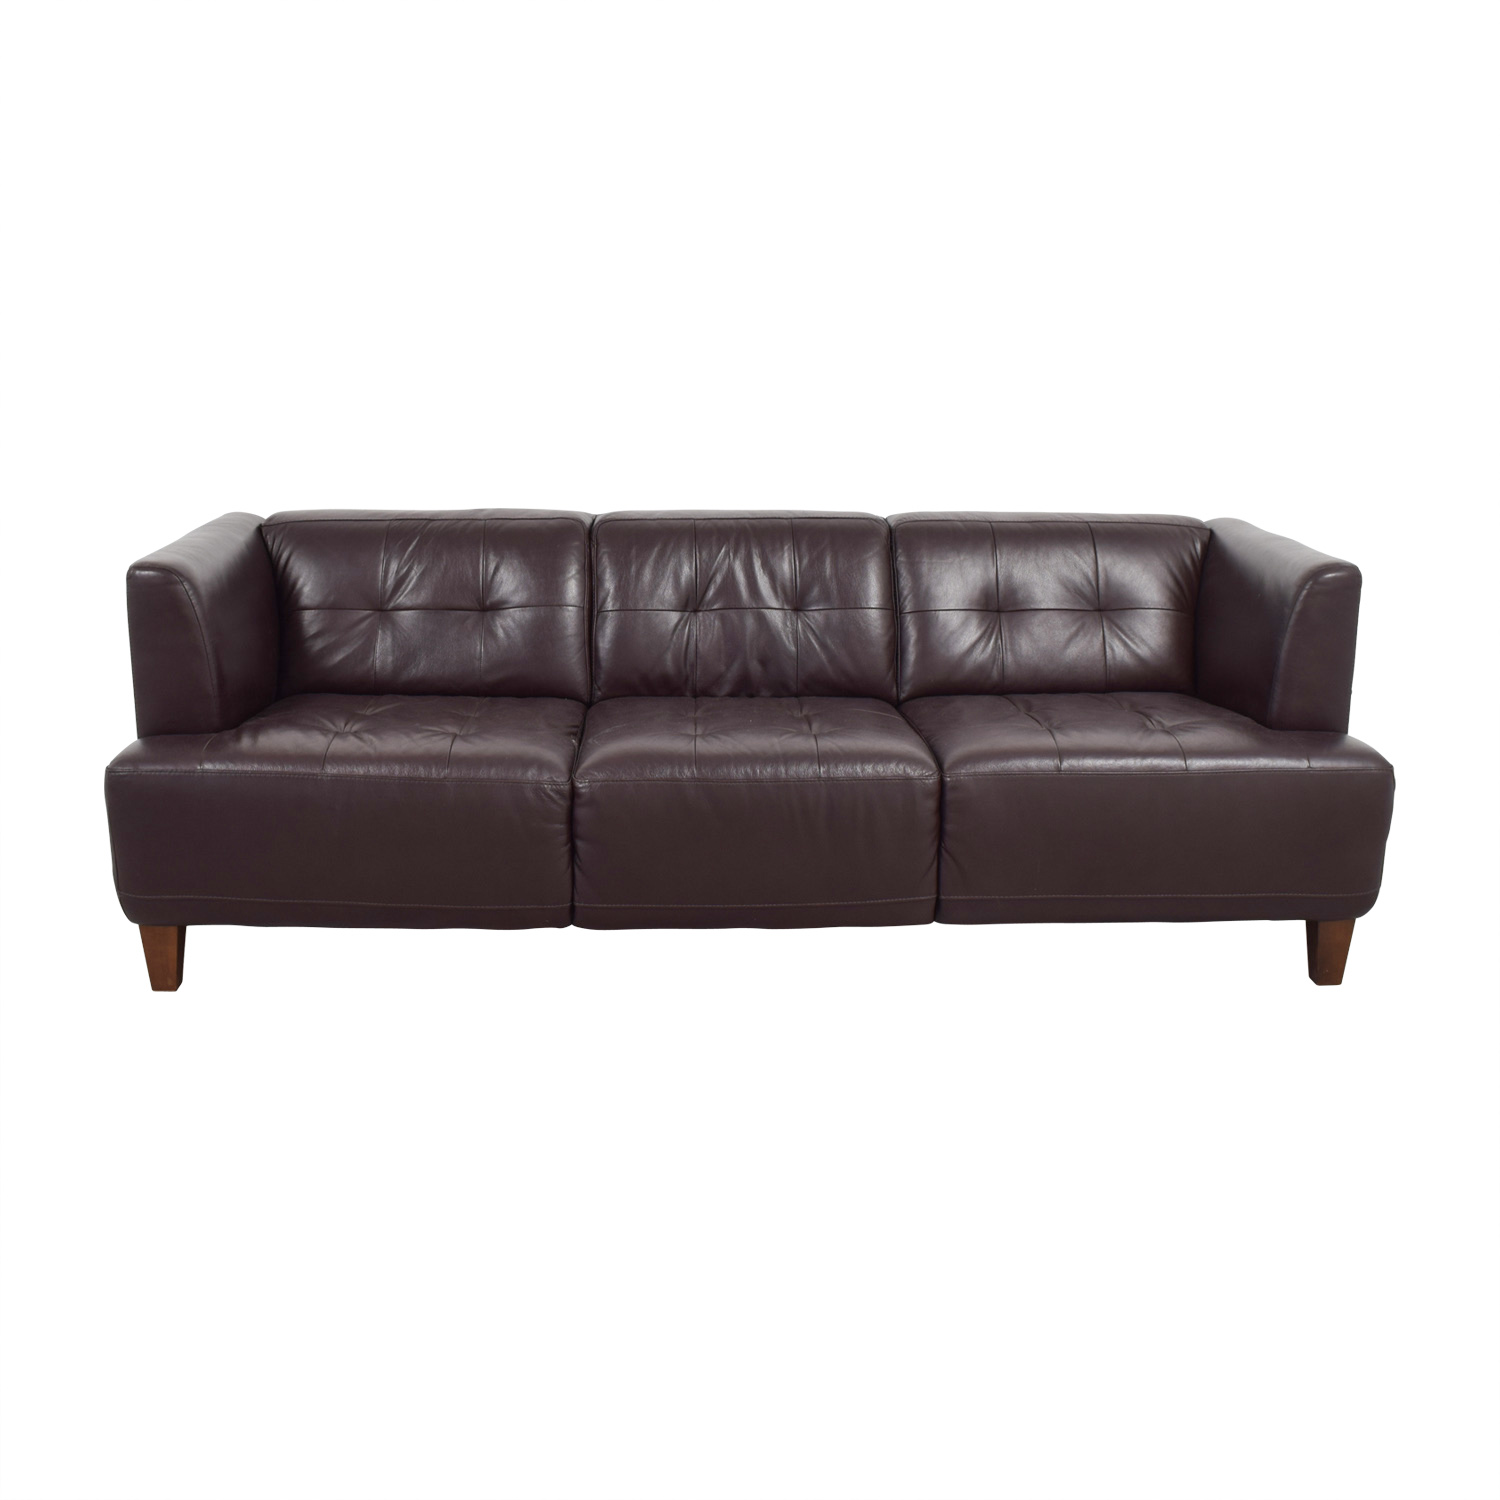 Macys Macys Brown Tufted Leather Couch discount